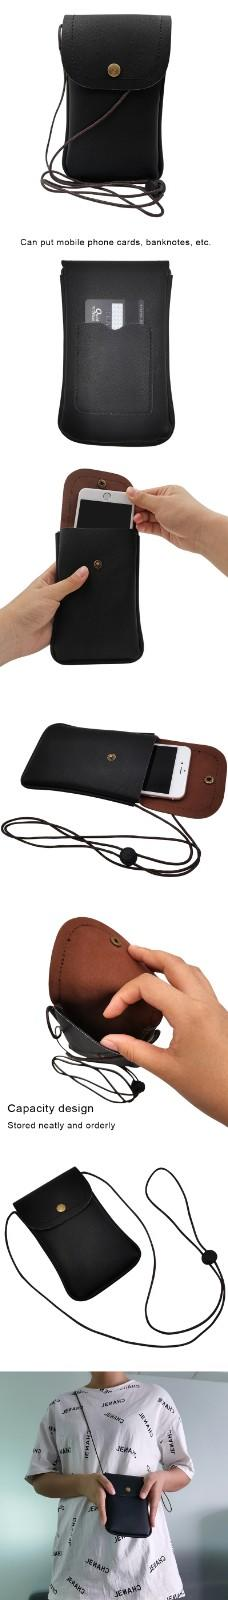 luxury phone case companies manufacturer for retail